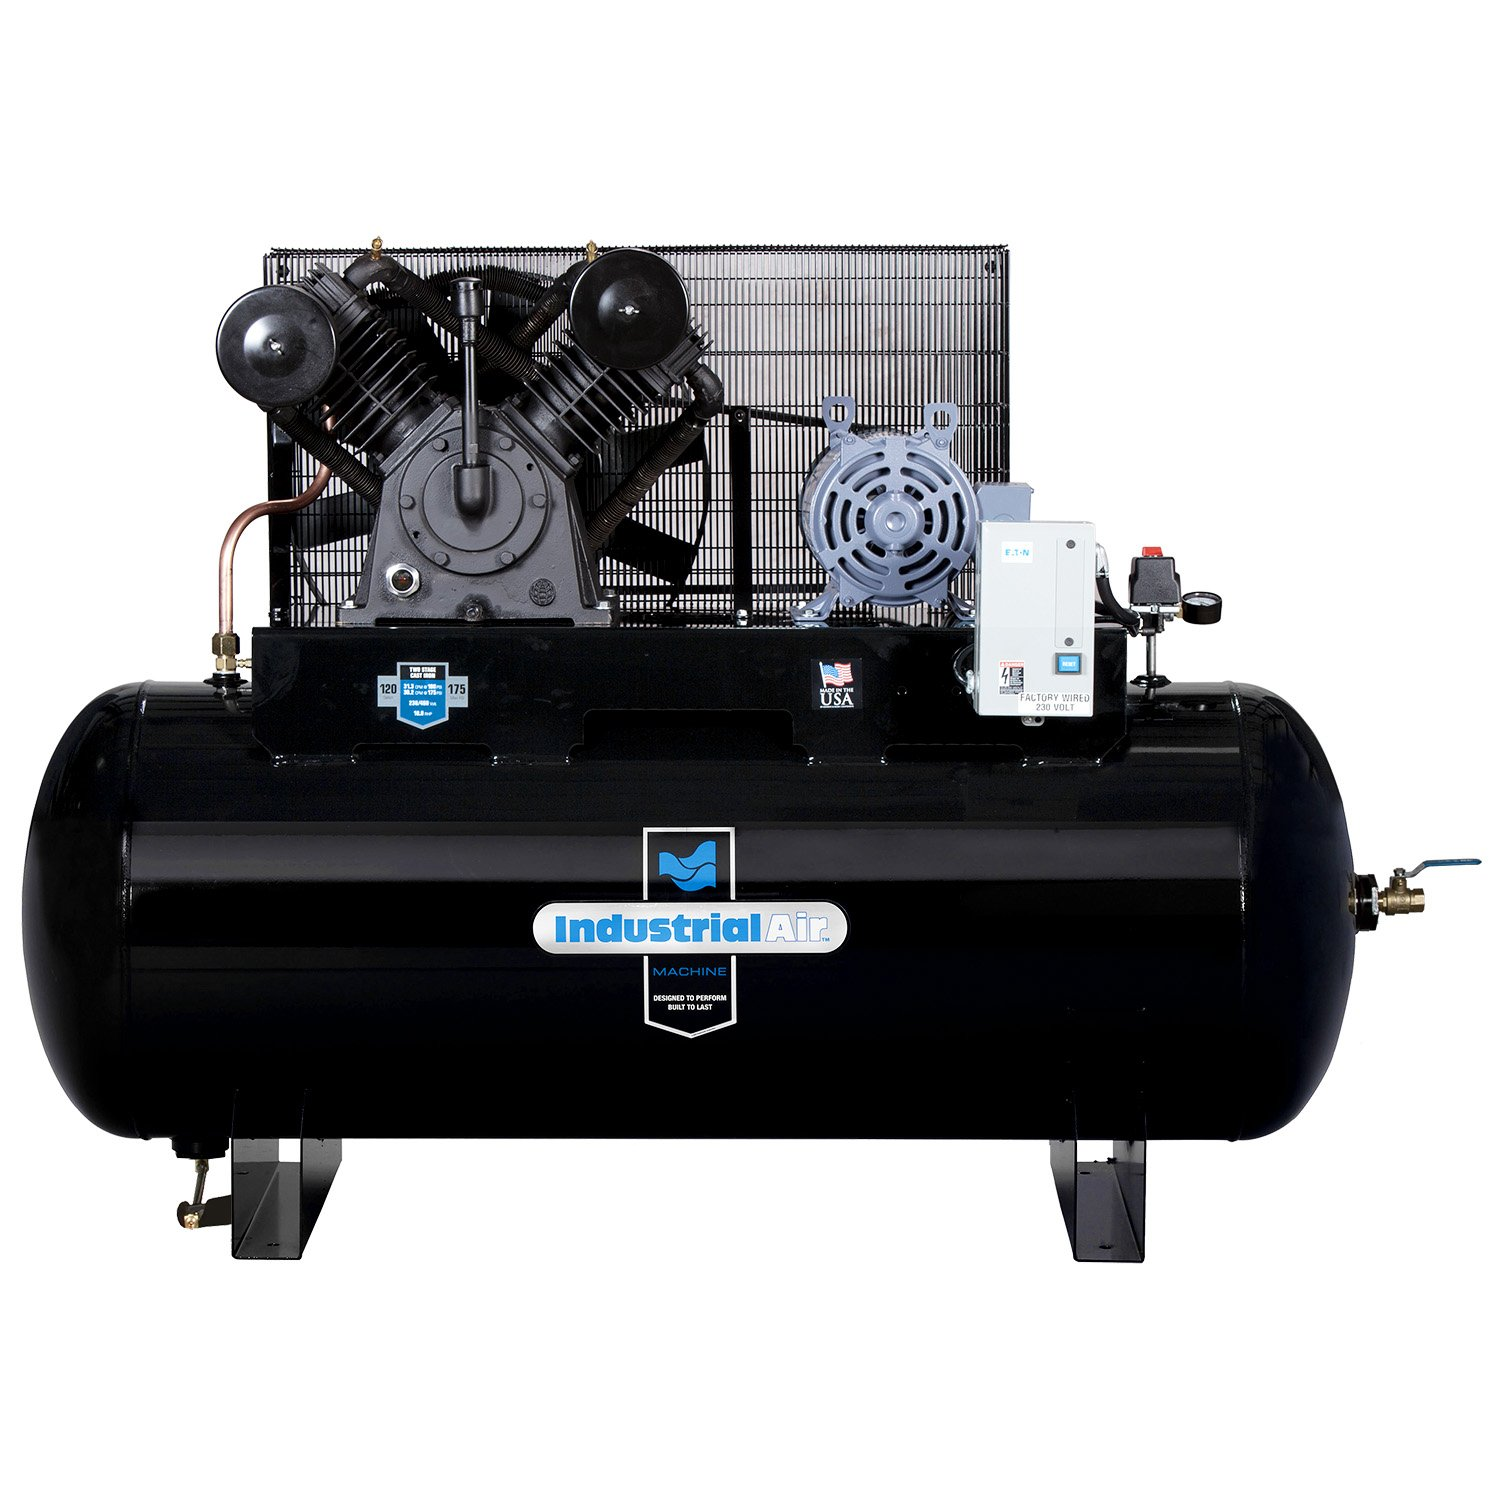 Industrial Air IH9929910 10 HP Two Stage Air Compressor, 120 gallon by Industrial Air